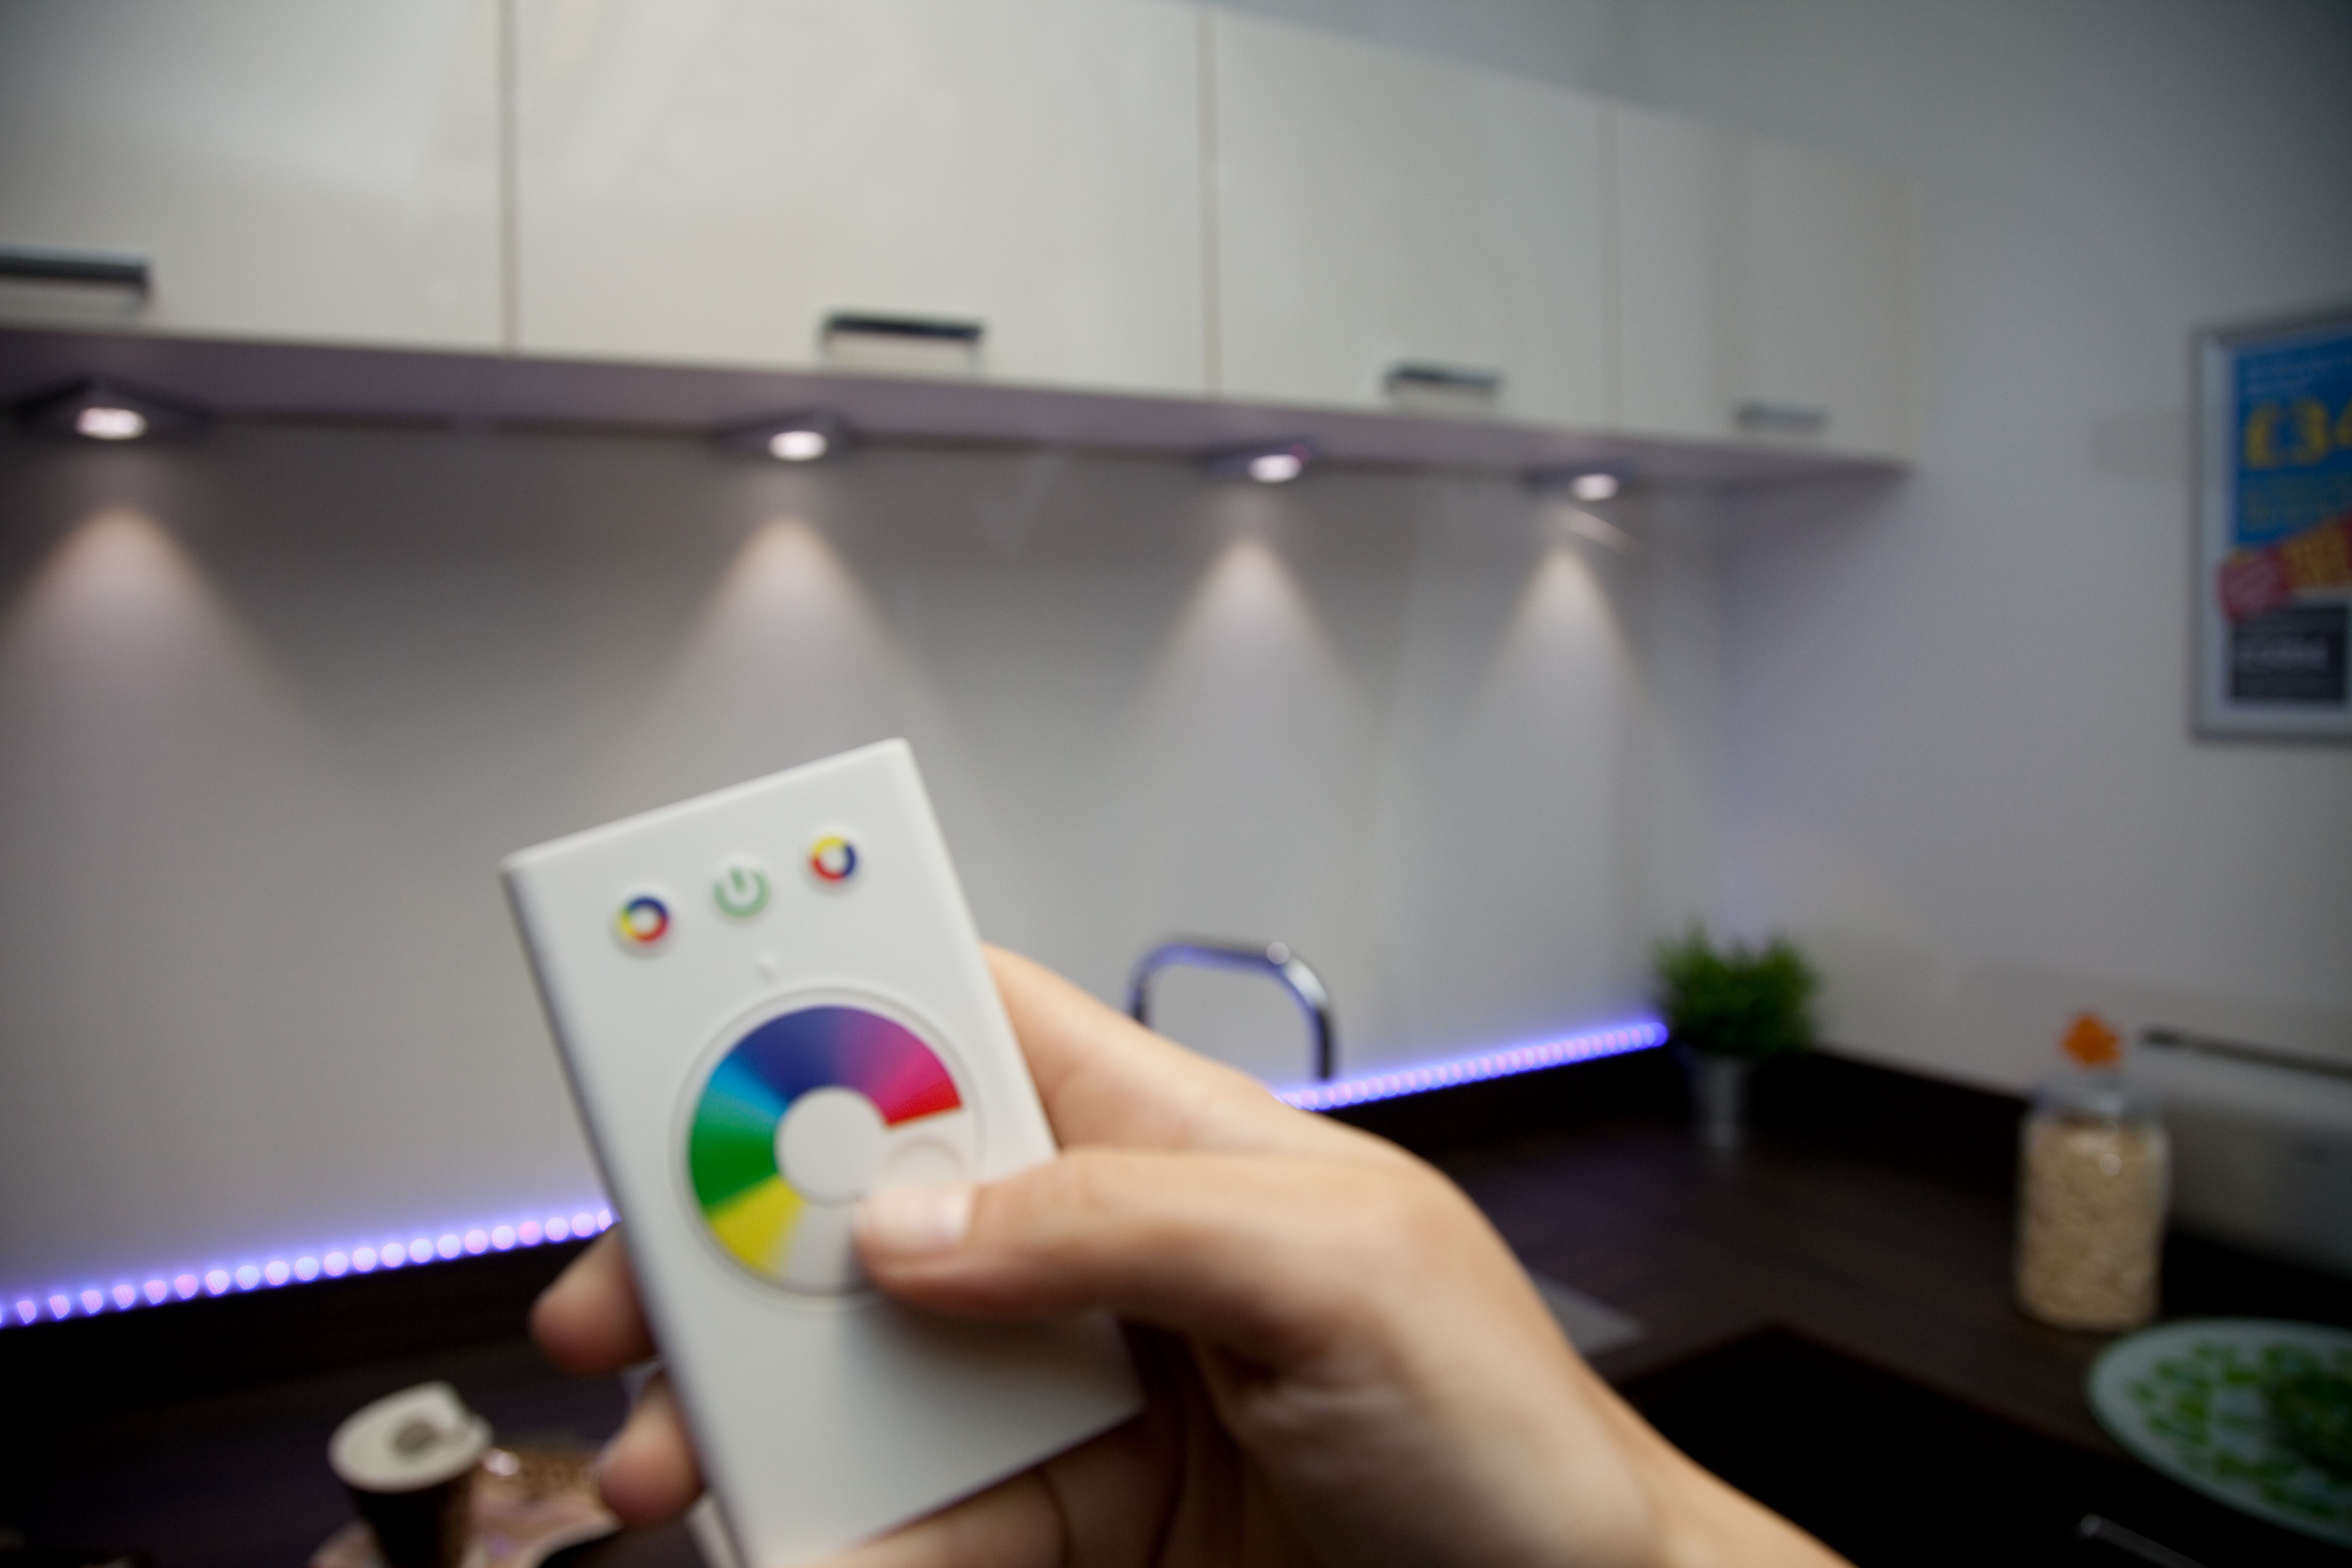 kitchen led lighting Change the mood by changing the colour colour changing LED lighting helps set ambiance in